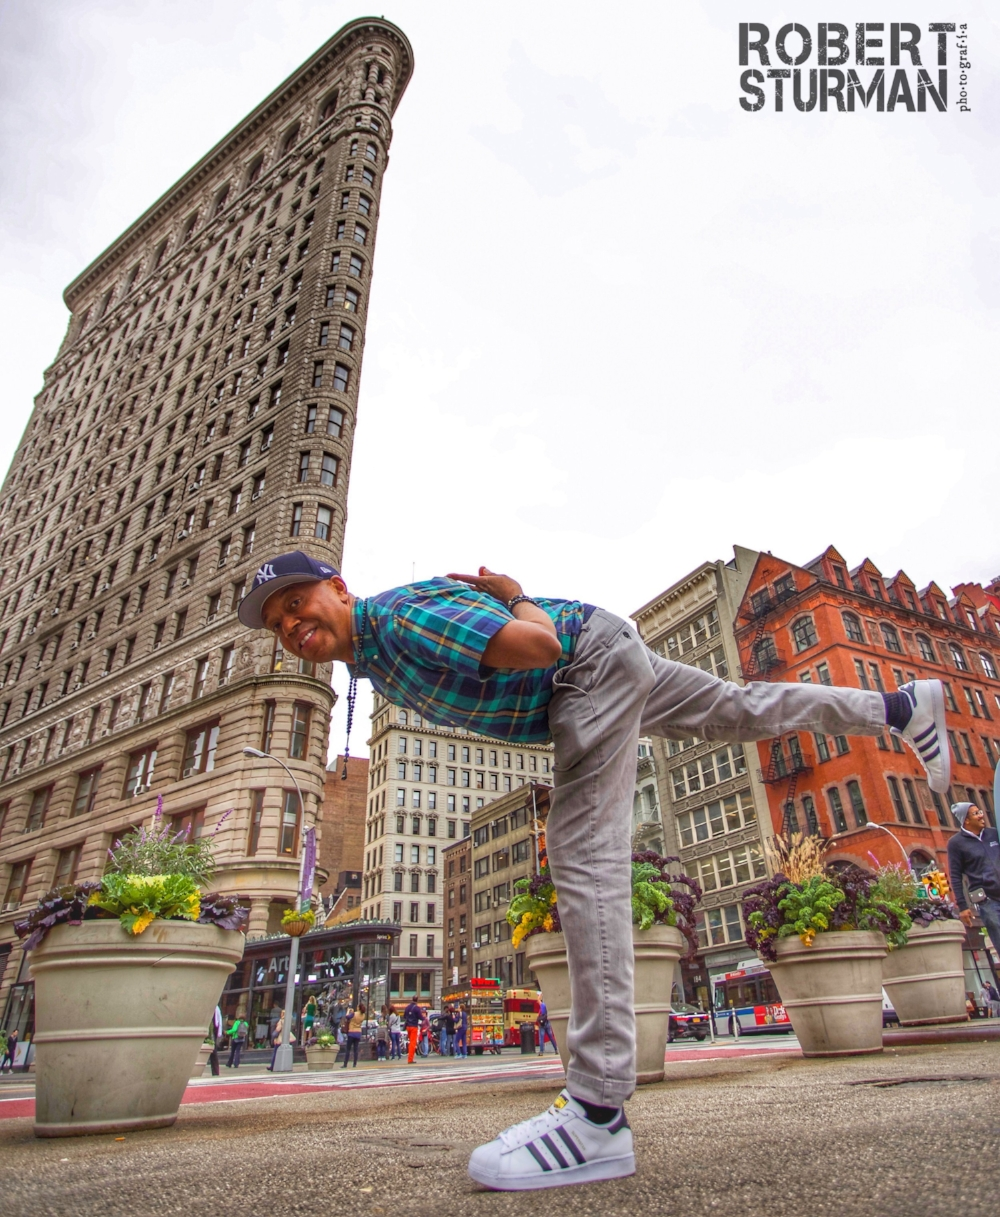 89) Russell Simmons: The Flatiron Building, New York